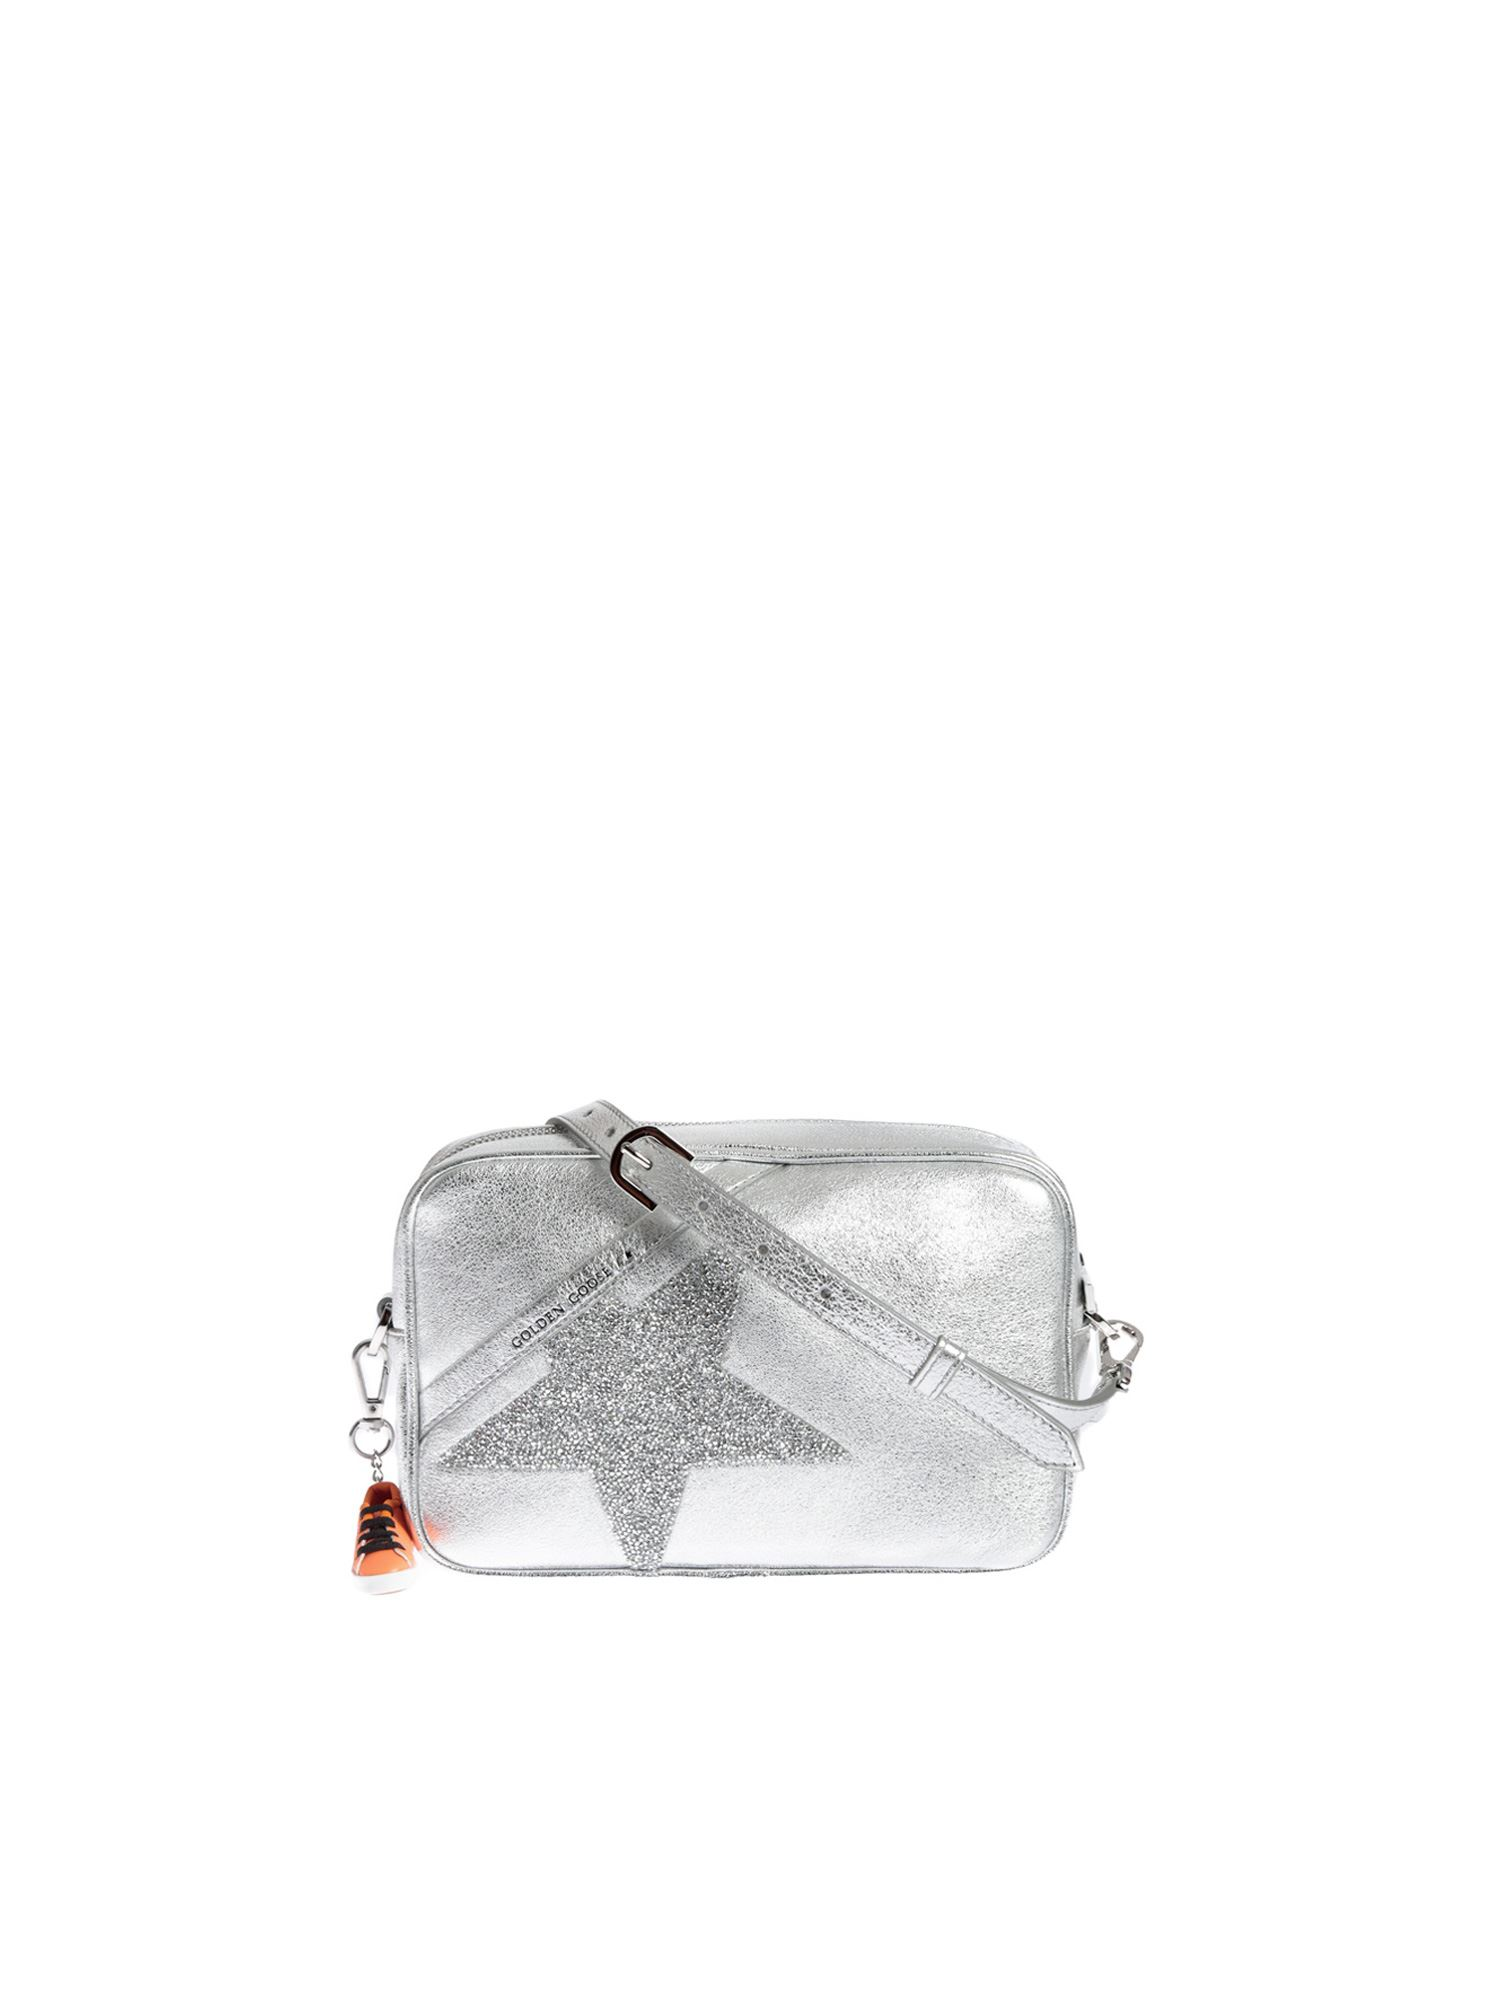 Golden Goose STAR BAG IN SILVER COLOR WITH CRYSTALS